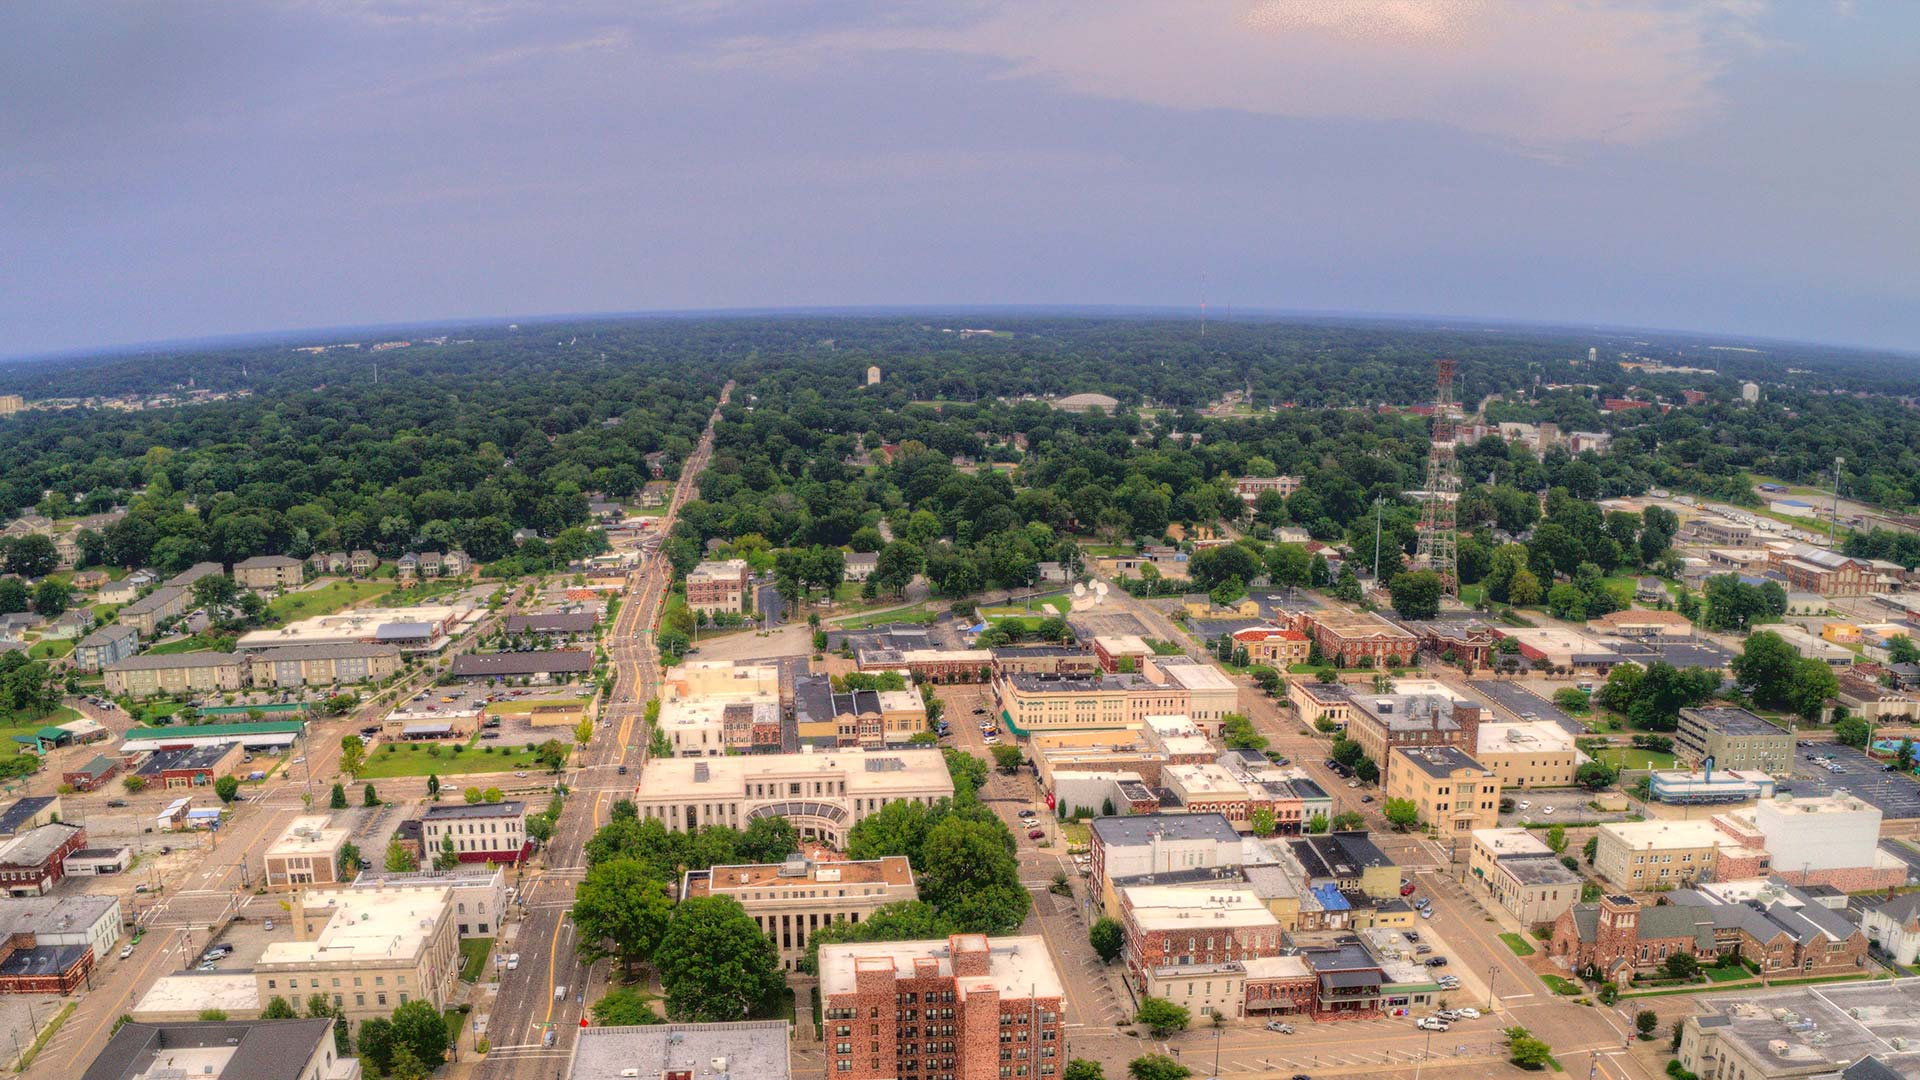 Panorama to illustrate dating in jackson